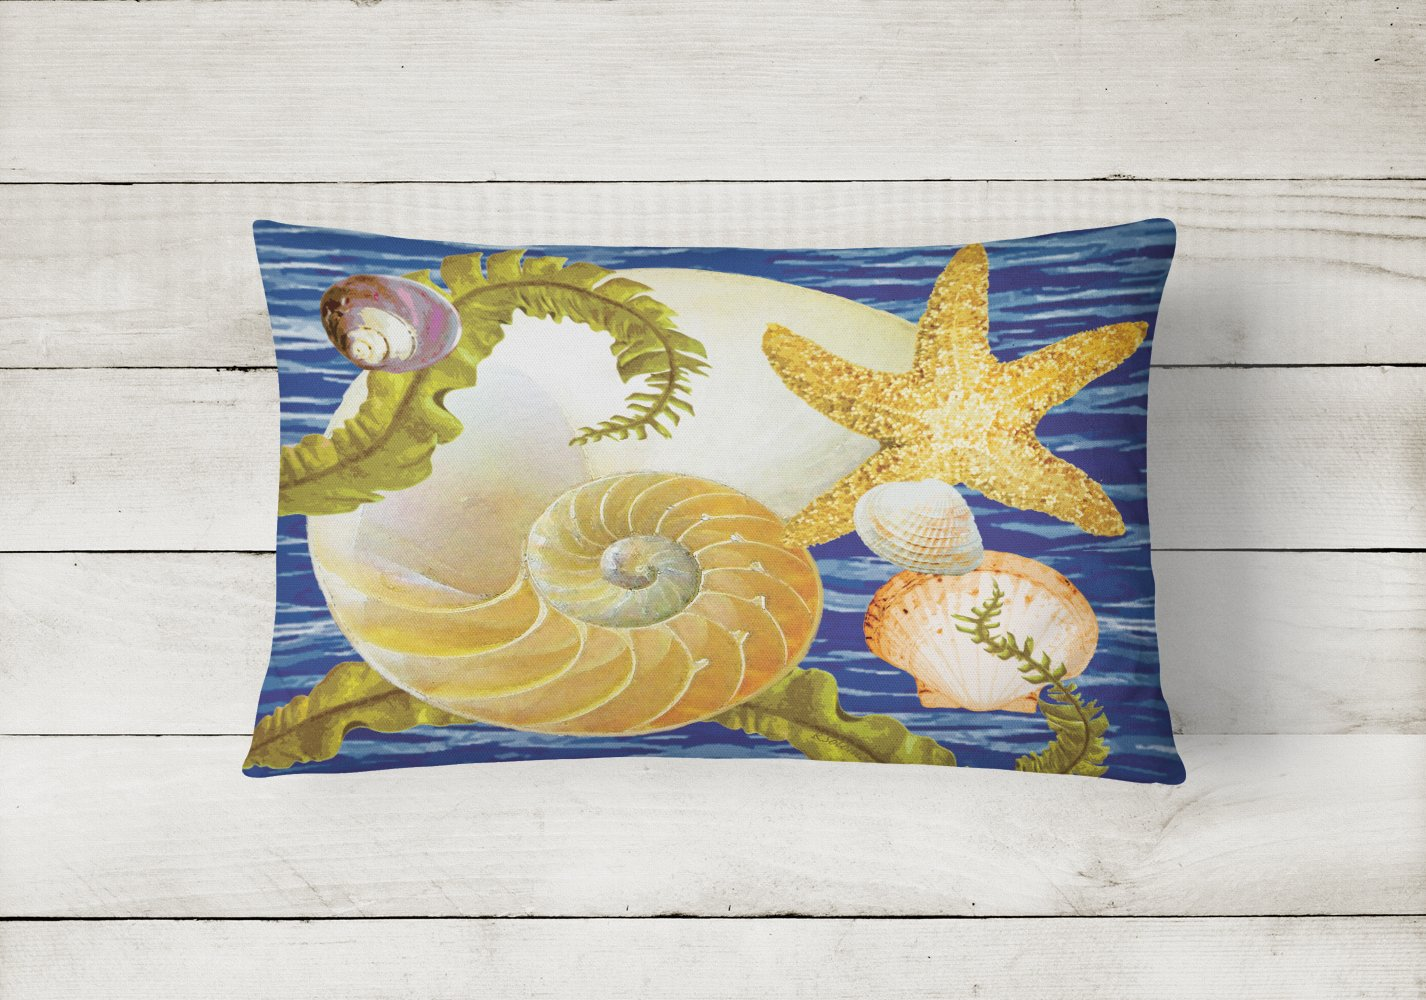 Cut Nautilus And Starfish Canvas Fabric Decorative Pillow PRS4056PW1216 by Caroline's Treasures